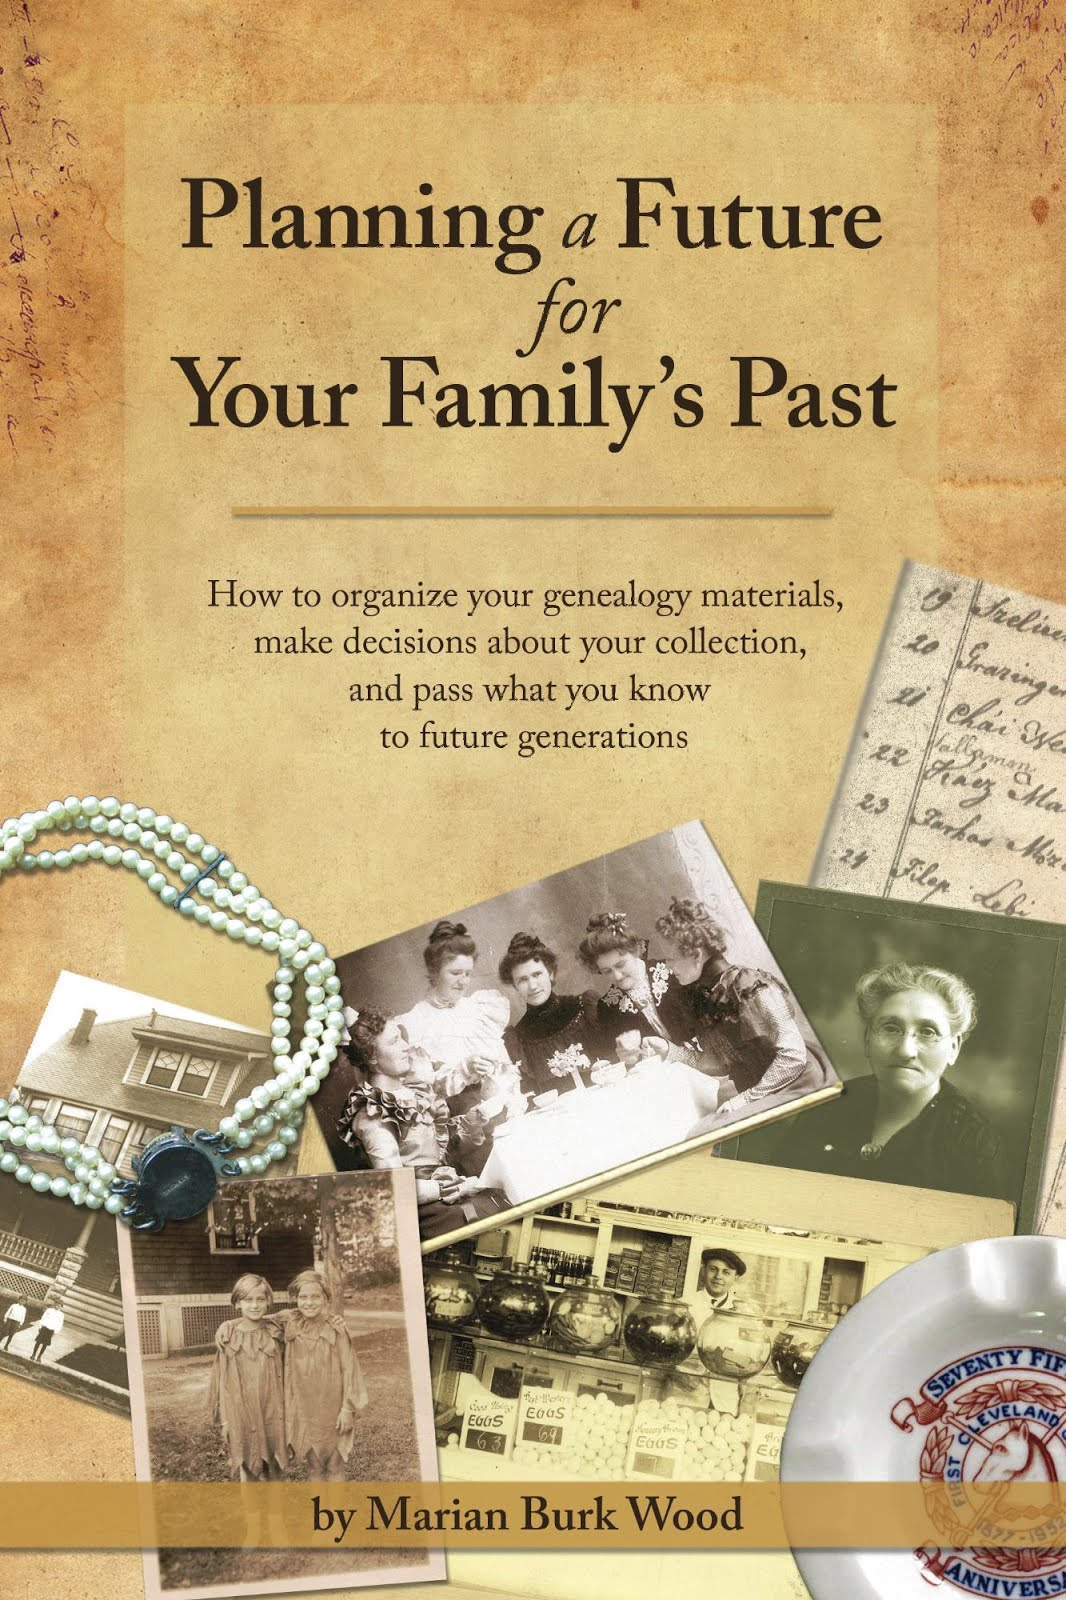 My genealogy book